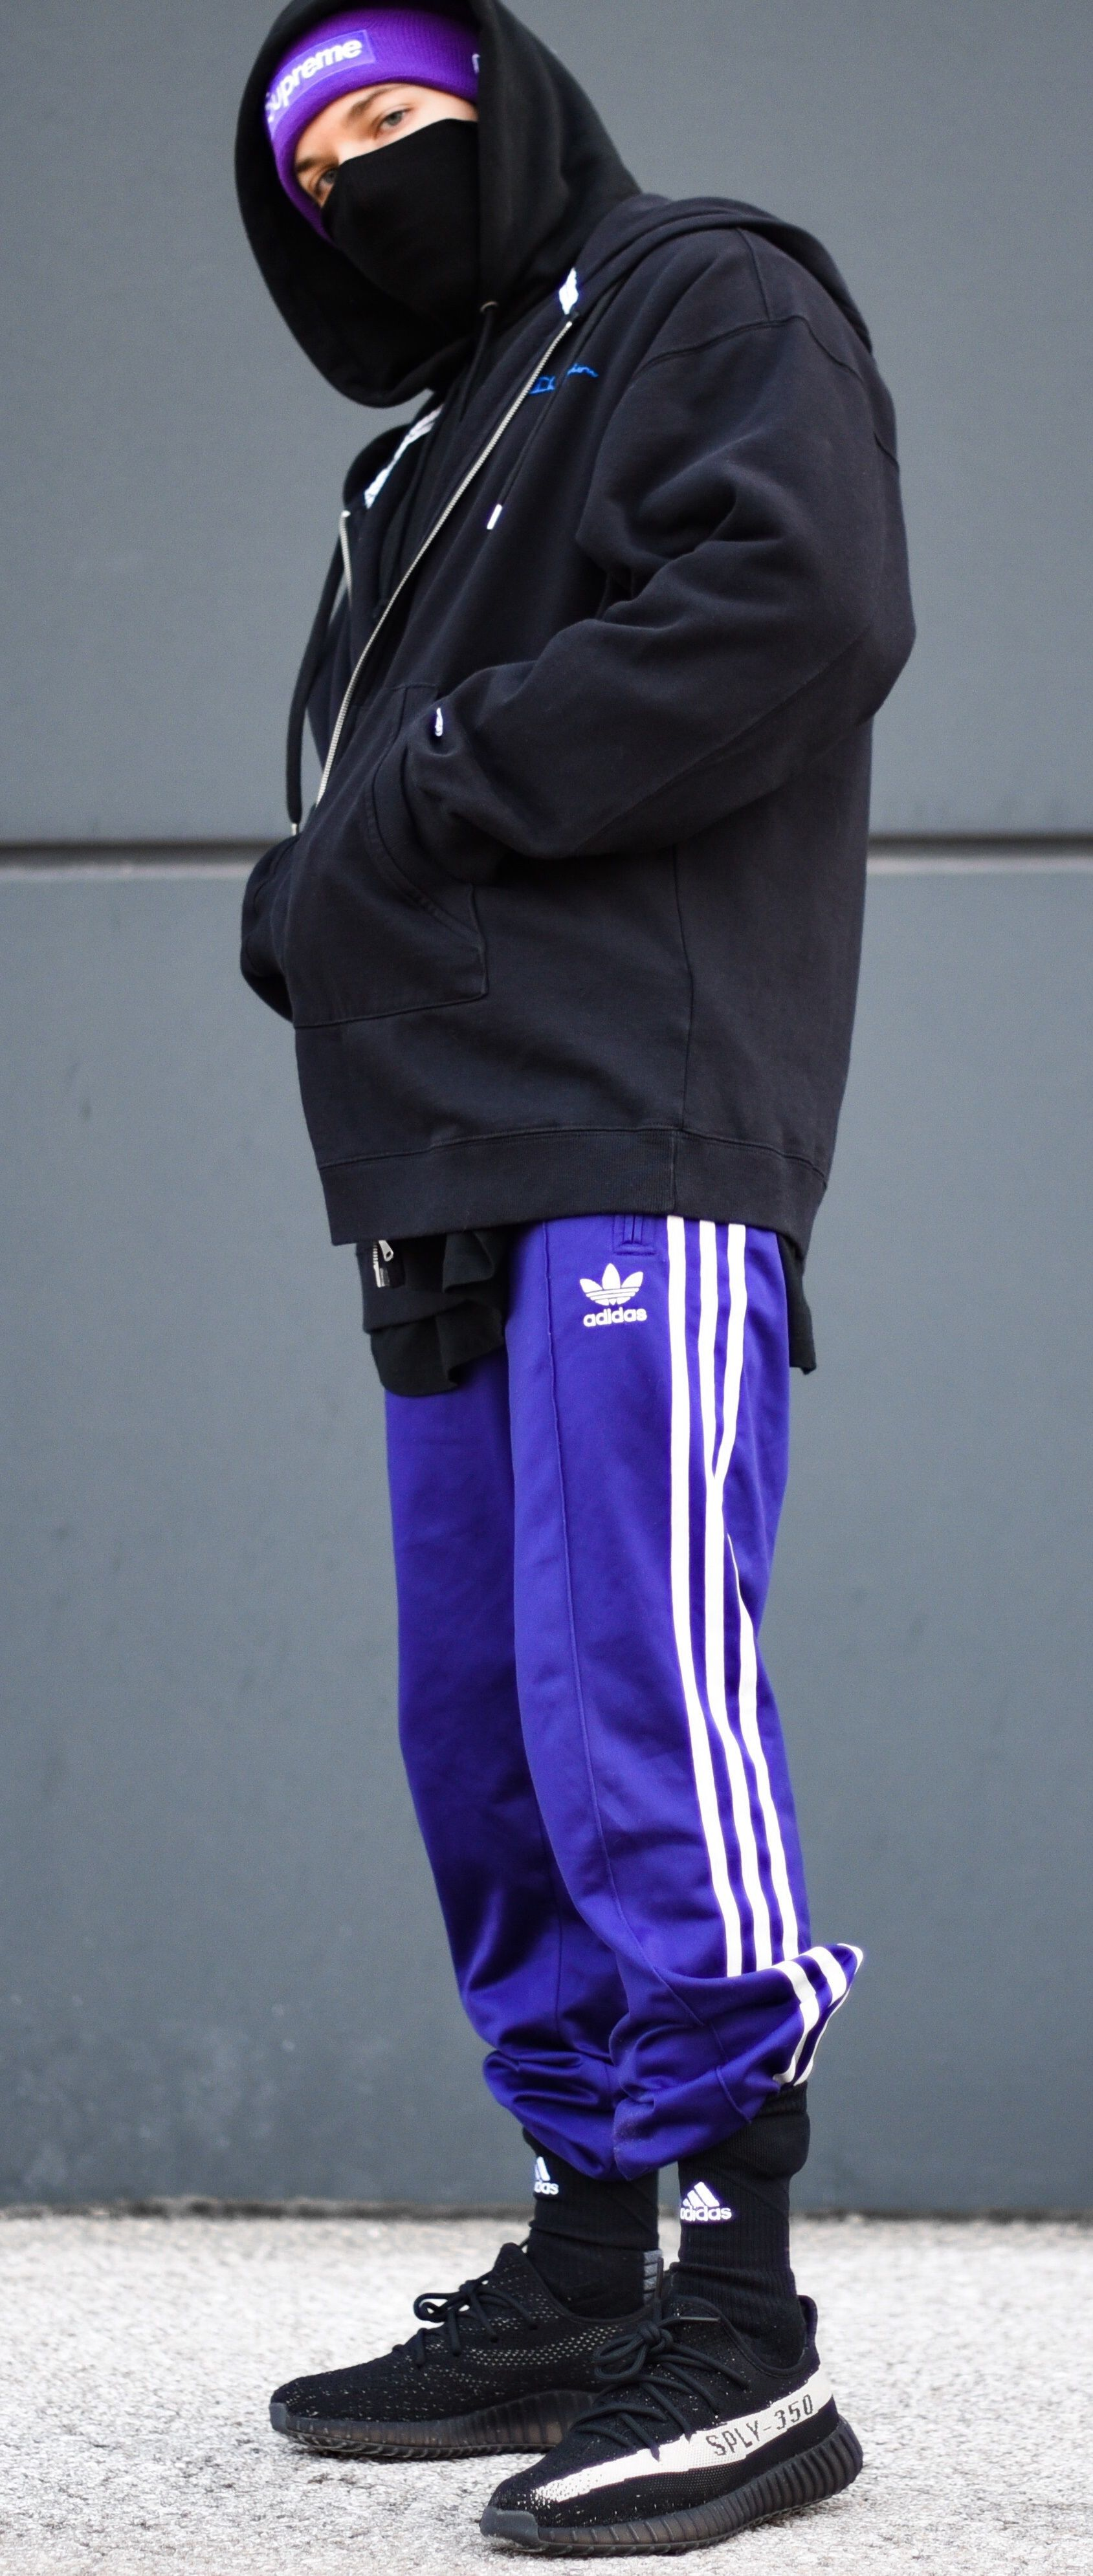 65185a69c18e Purple Adidas Pants | ensemble. | Red adidas pants, Adidas pants ...